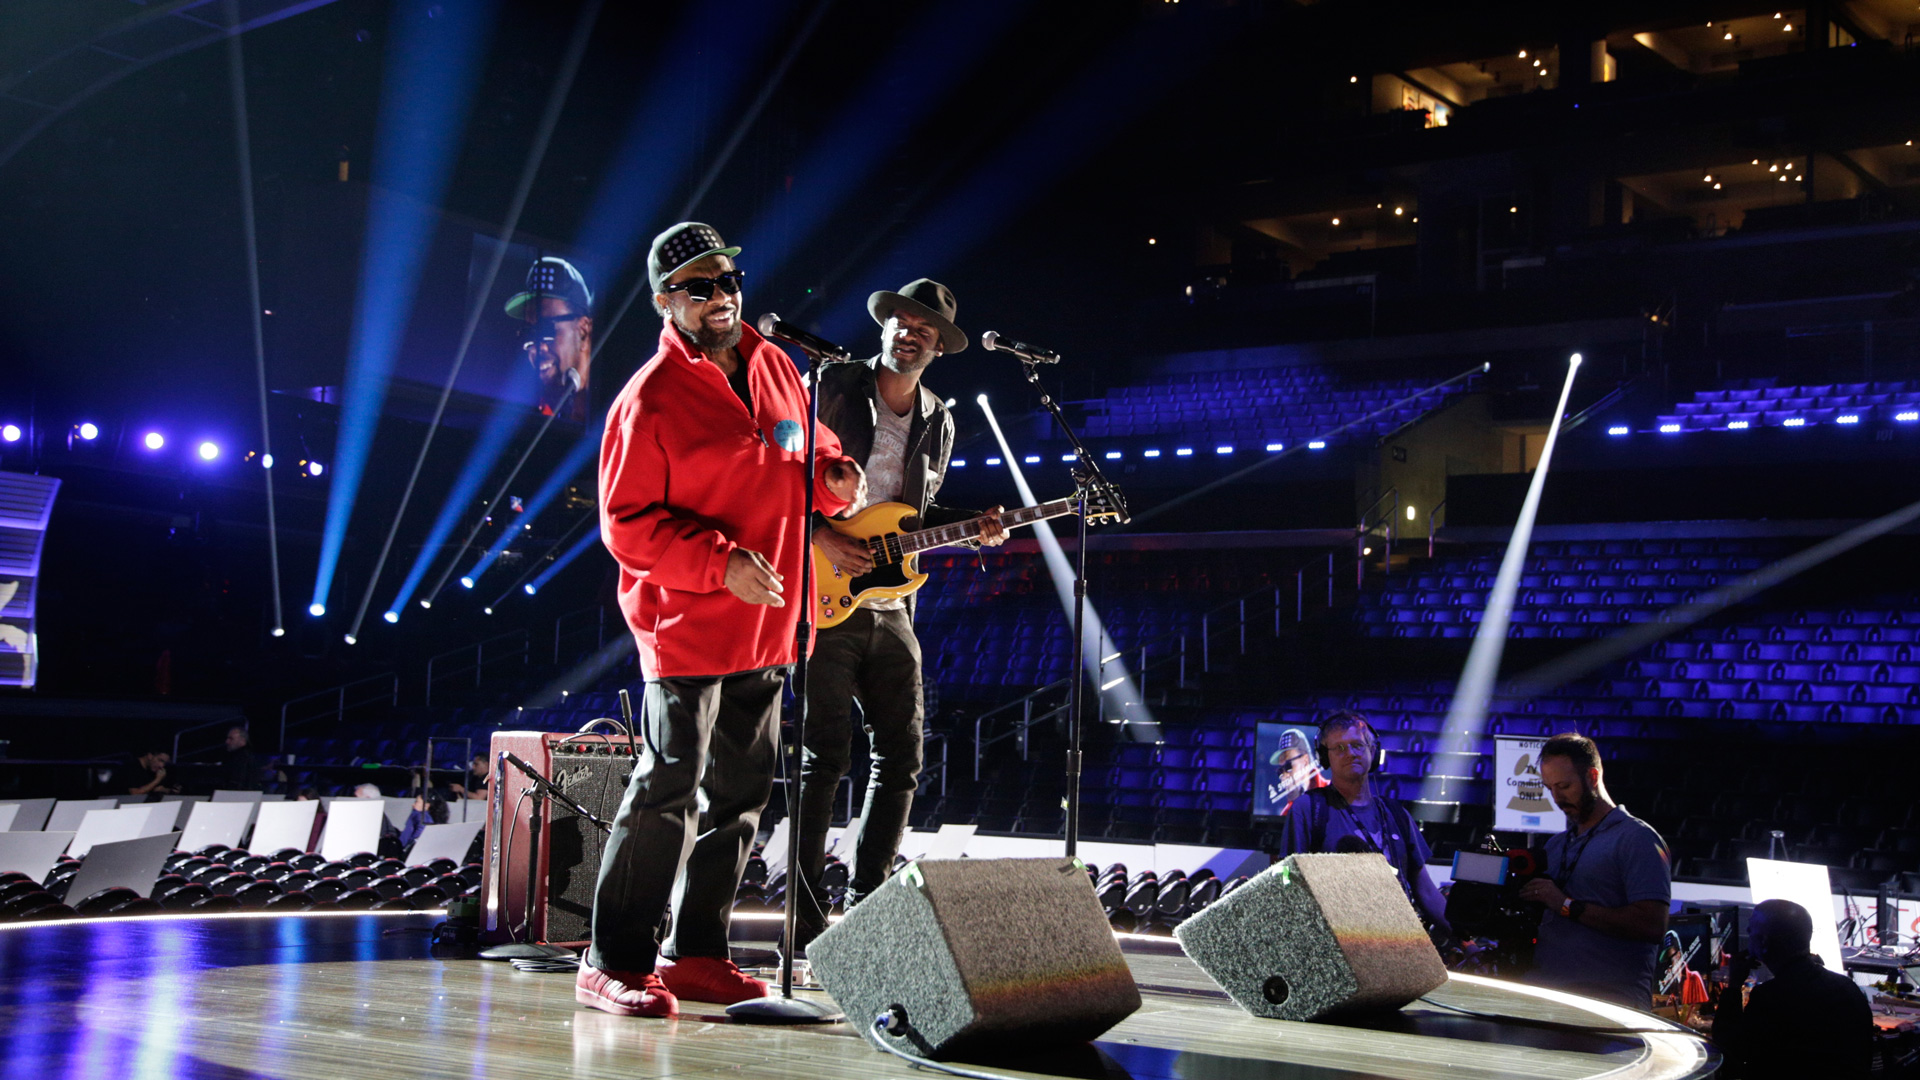 Two-time GRAMMY nominee William Bell and guitarist Gary Clark, Jr. practice their collaboration.